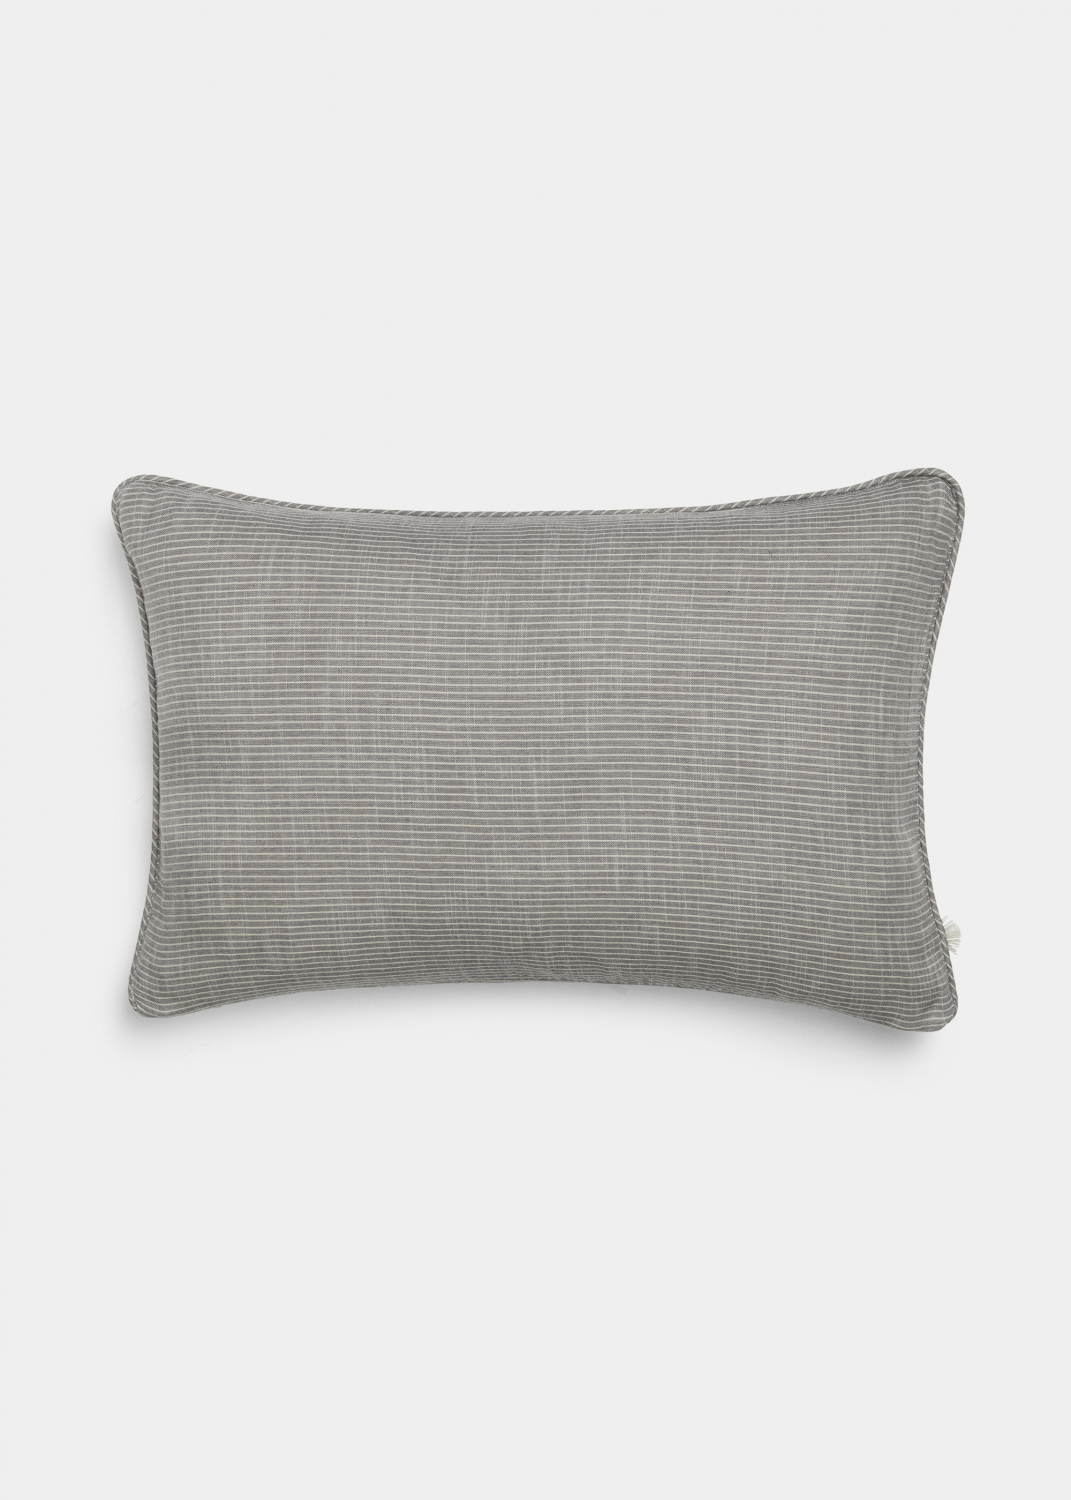 Cushions - Pillow Striped (40x60)